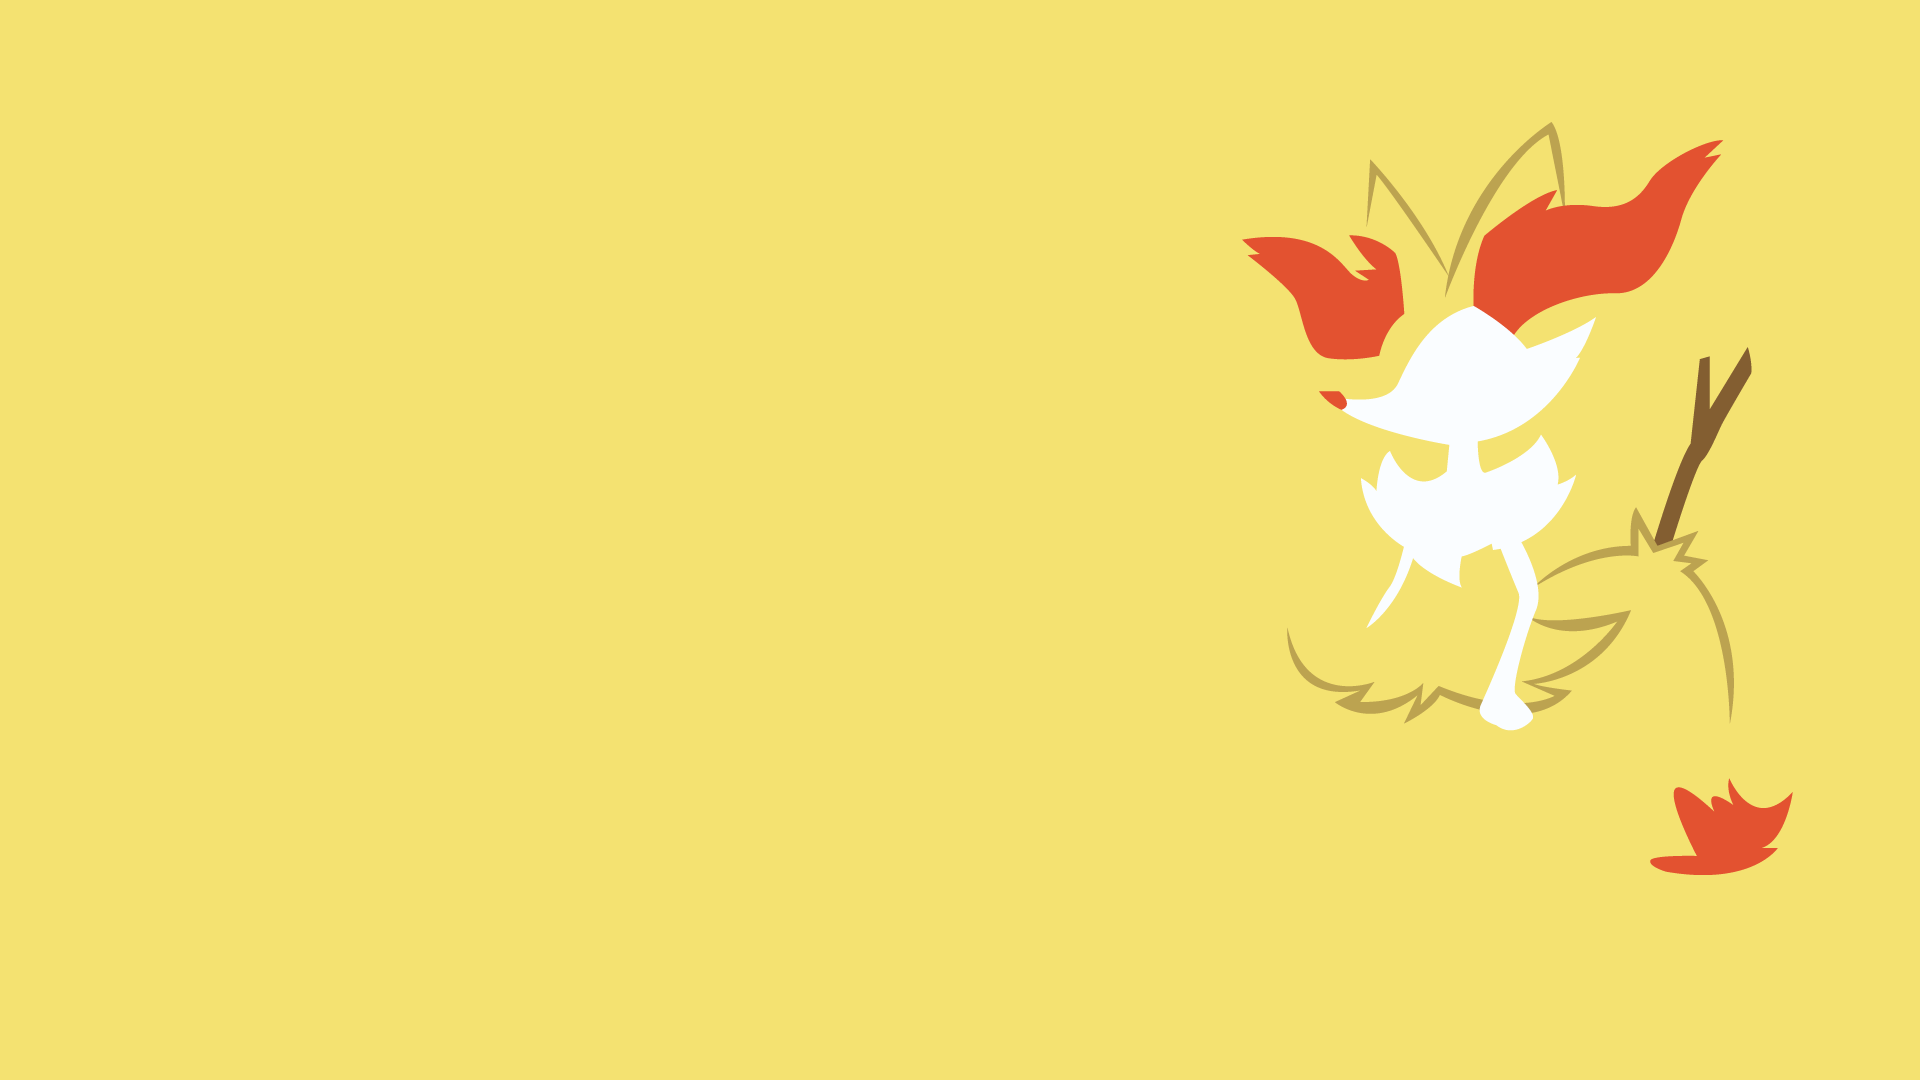 Pokemon Fennekin Wallpaper - WallpaperSafari